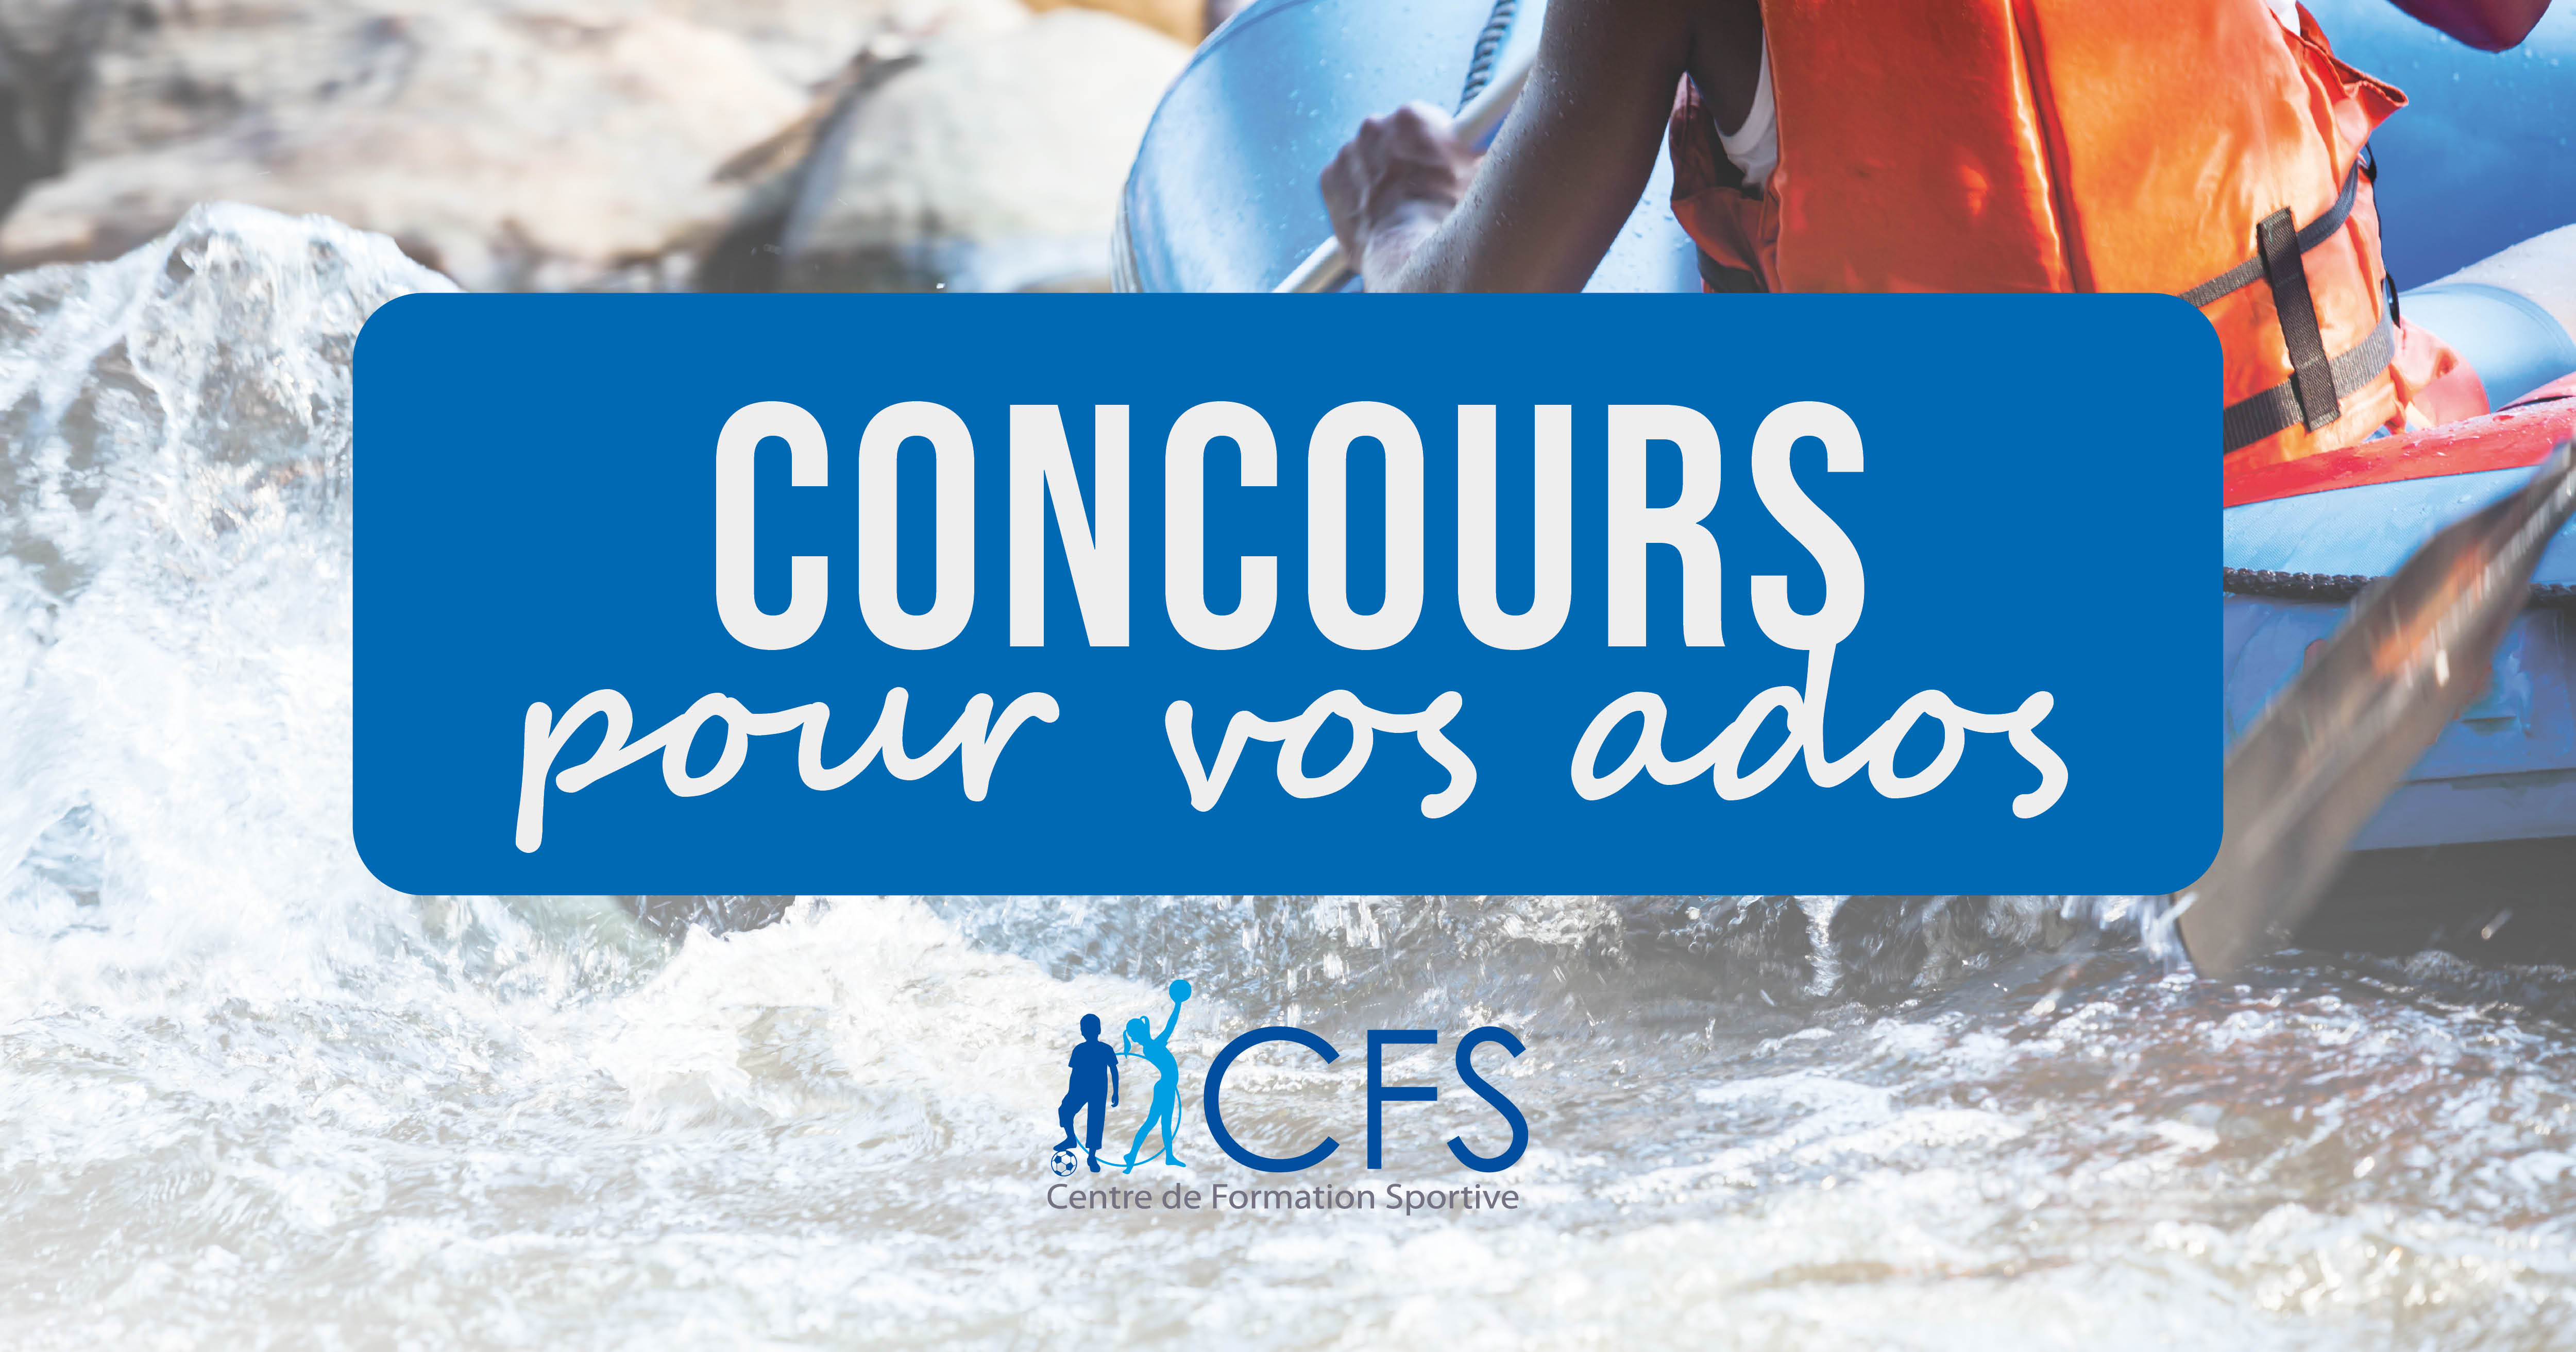 CONCOURS - Stages Ados